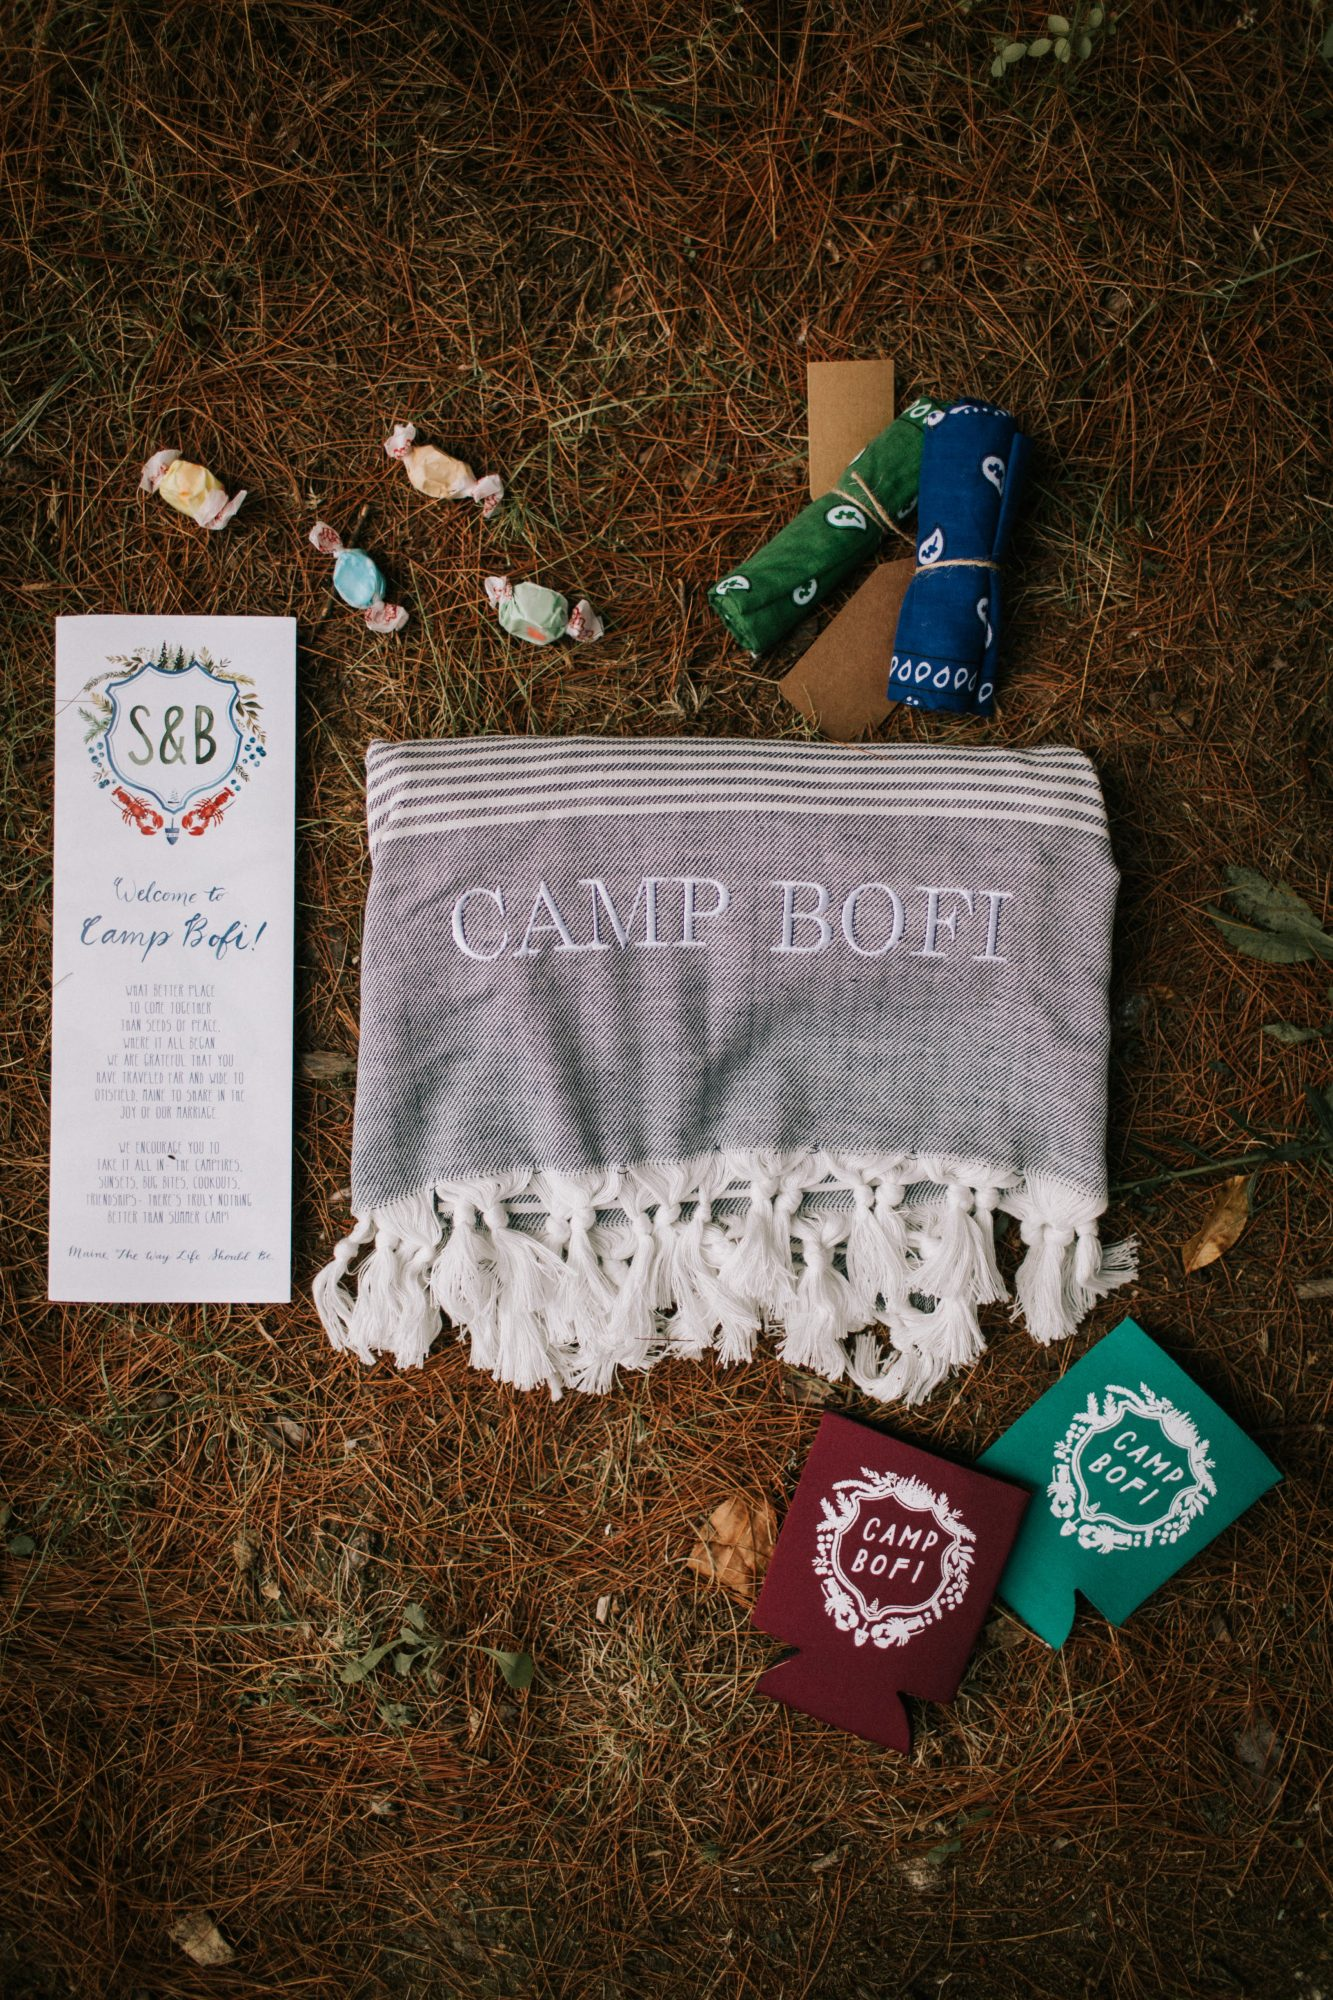 sofi ben camp weekend swag for guests